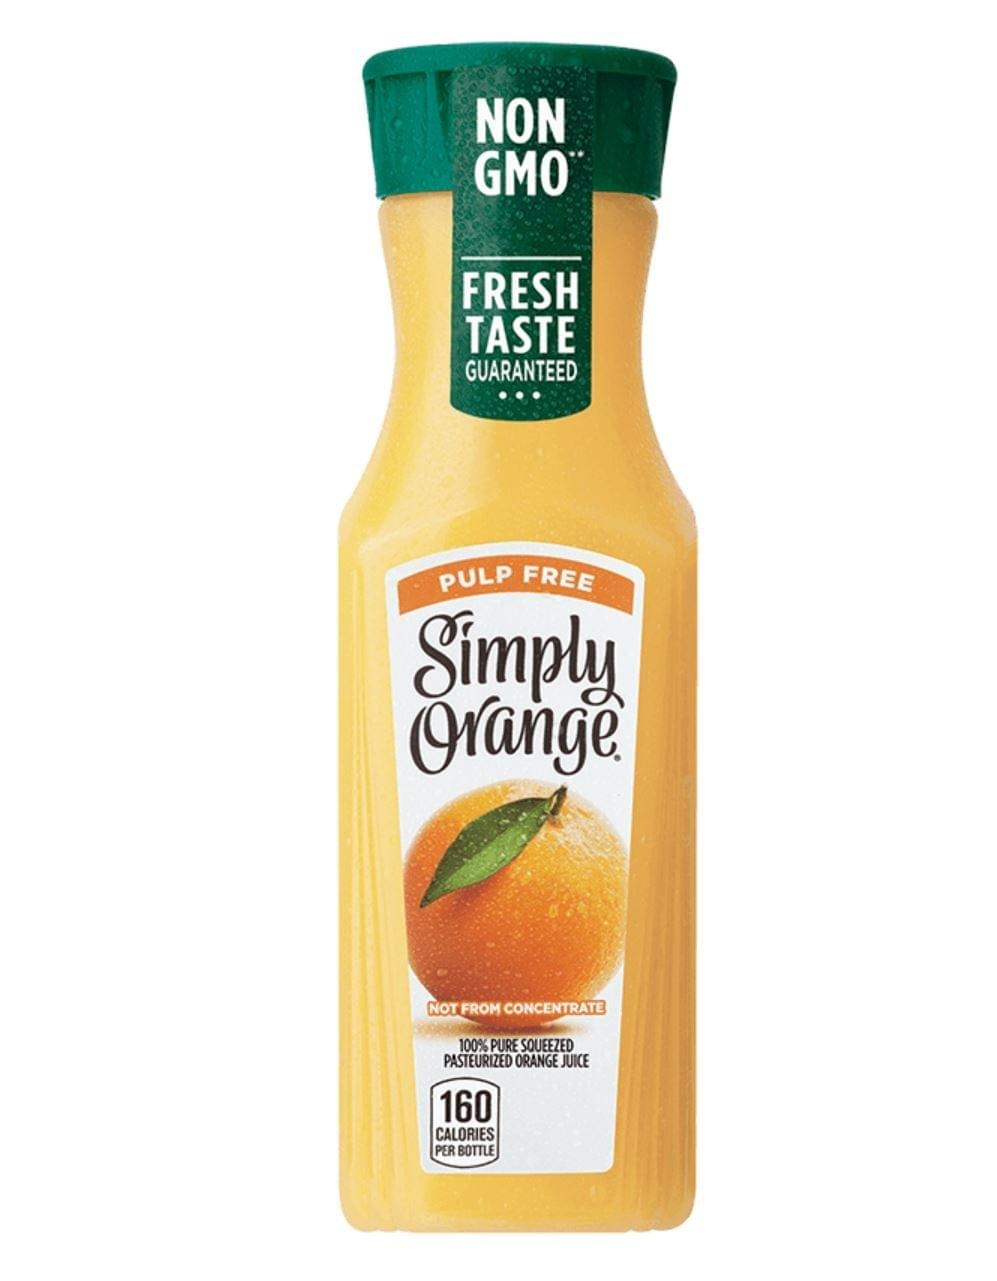 Chick-fil-A Simply Orange Juice Nutrition Facts